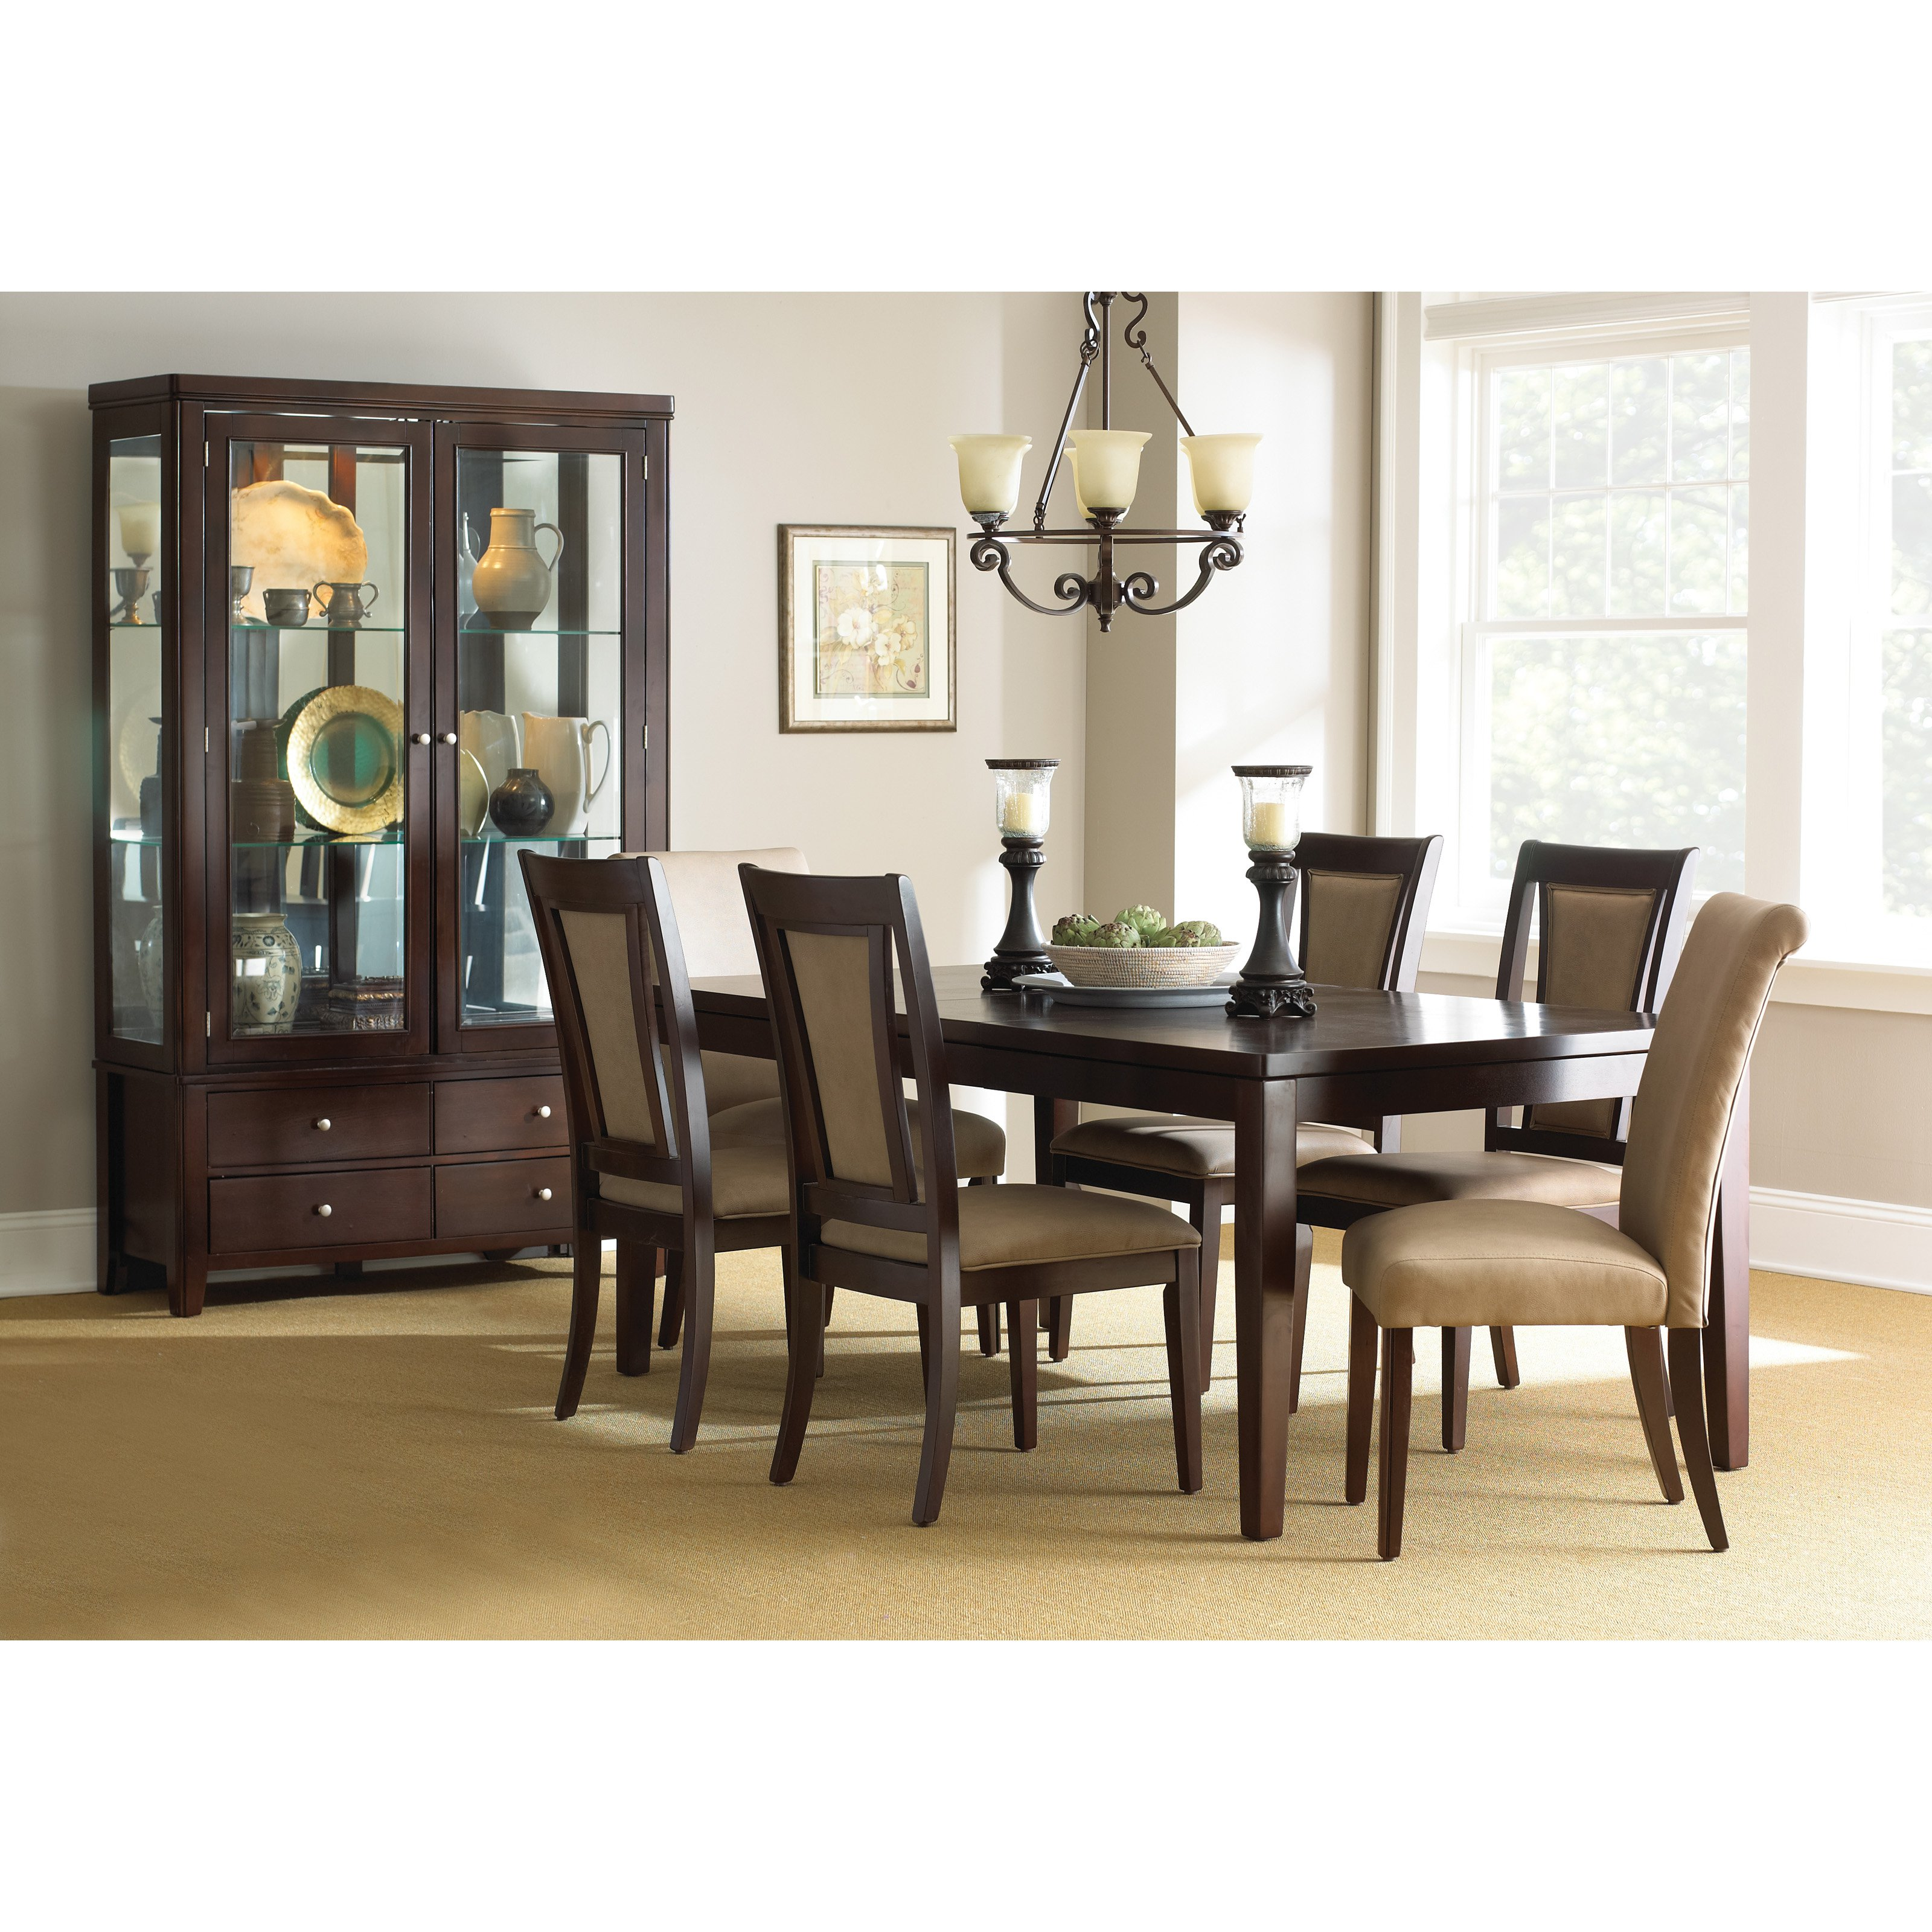 Steve Silver Furniture Wilson Dining Table